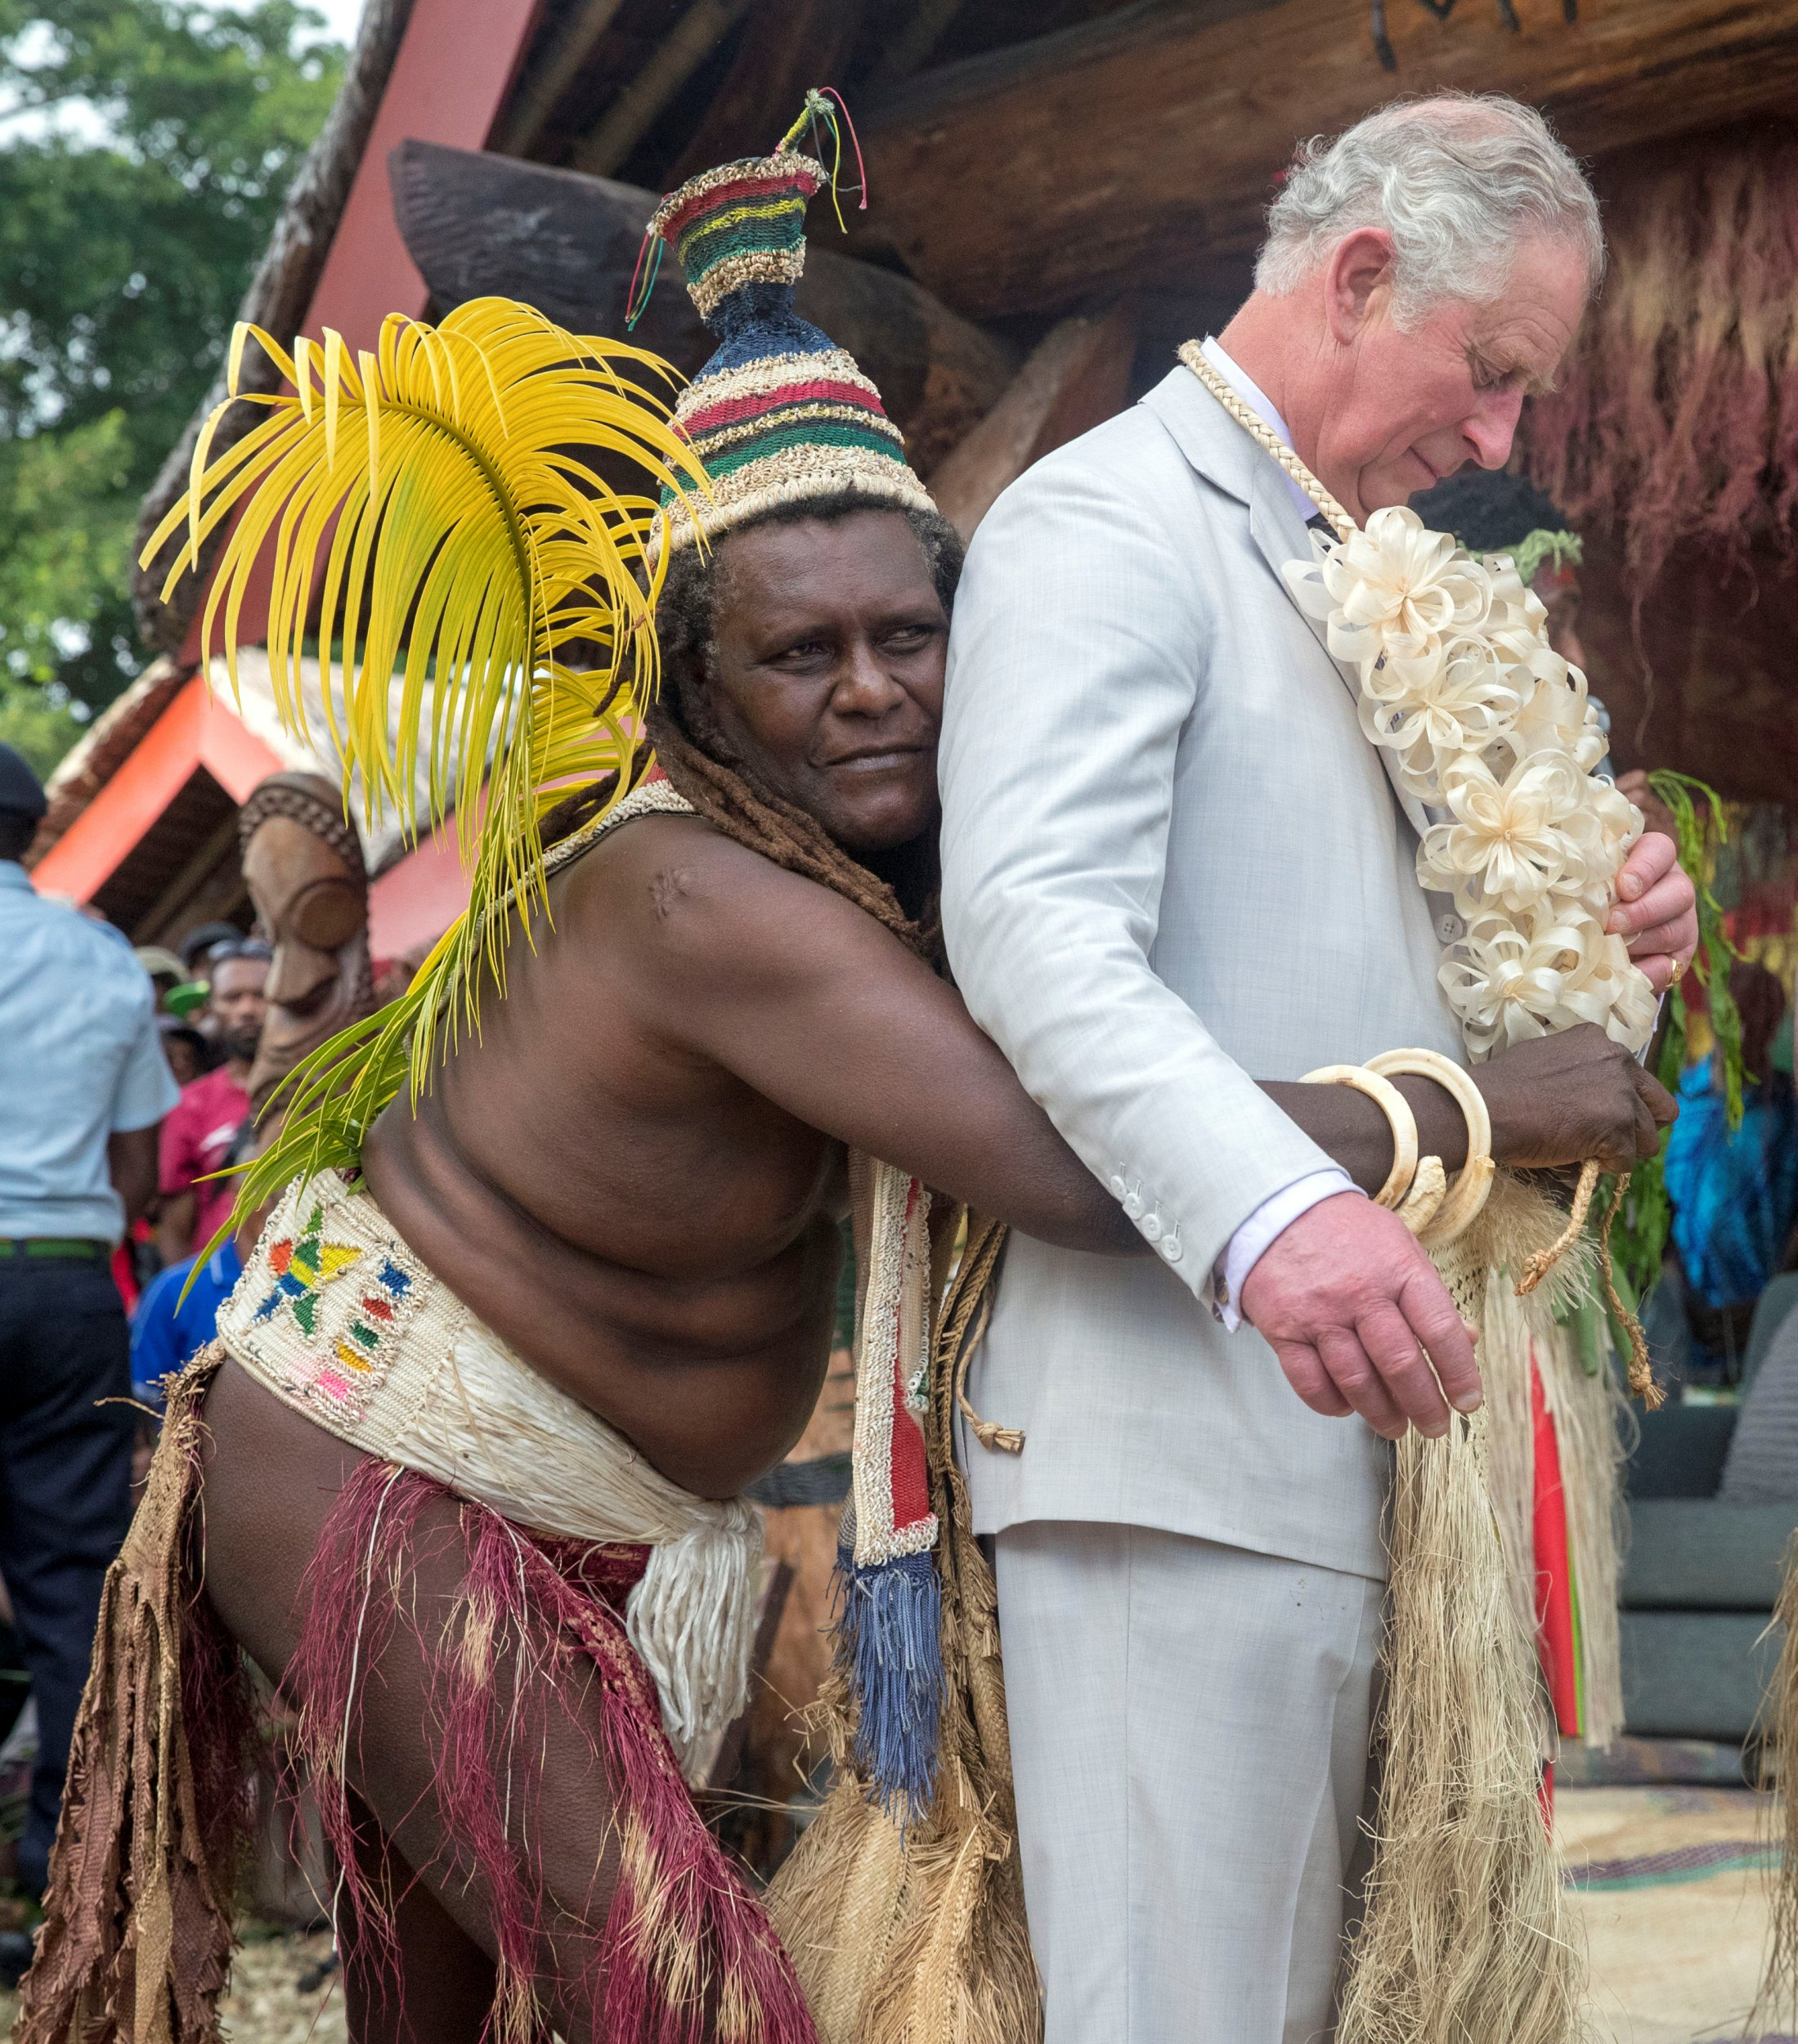 Britain's Prince Charles is given a grass skirt to wear prior to receiving a chiefly title during a visit to the Chiefs' nakamal, as he visits the South Pacific island of Vanuatu, April 7, 2018. Steve Parsons/Pool via Reuters